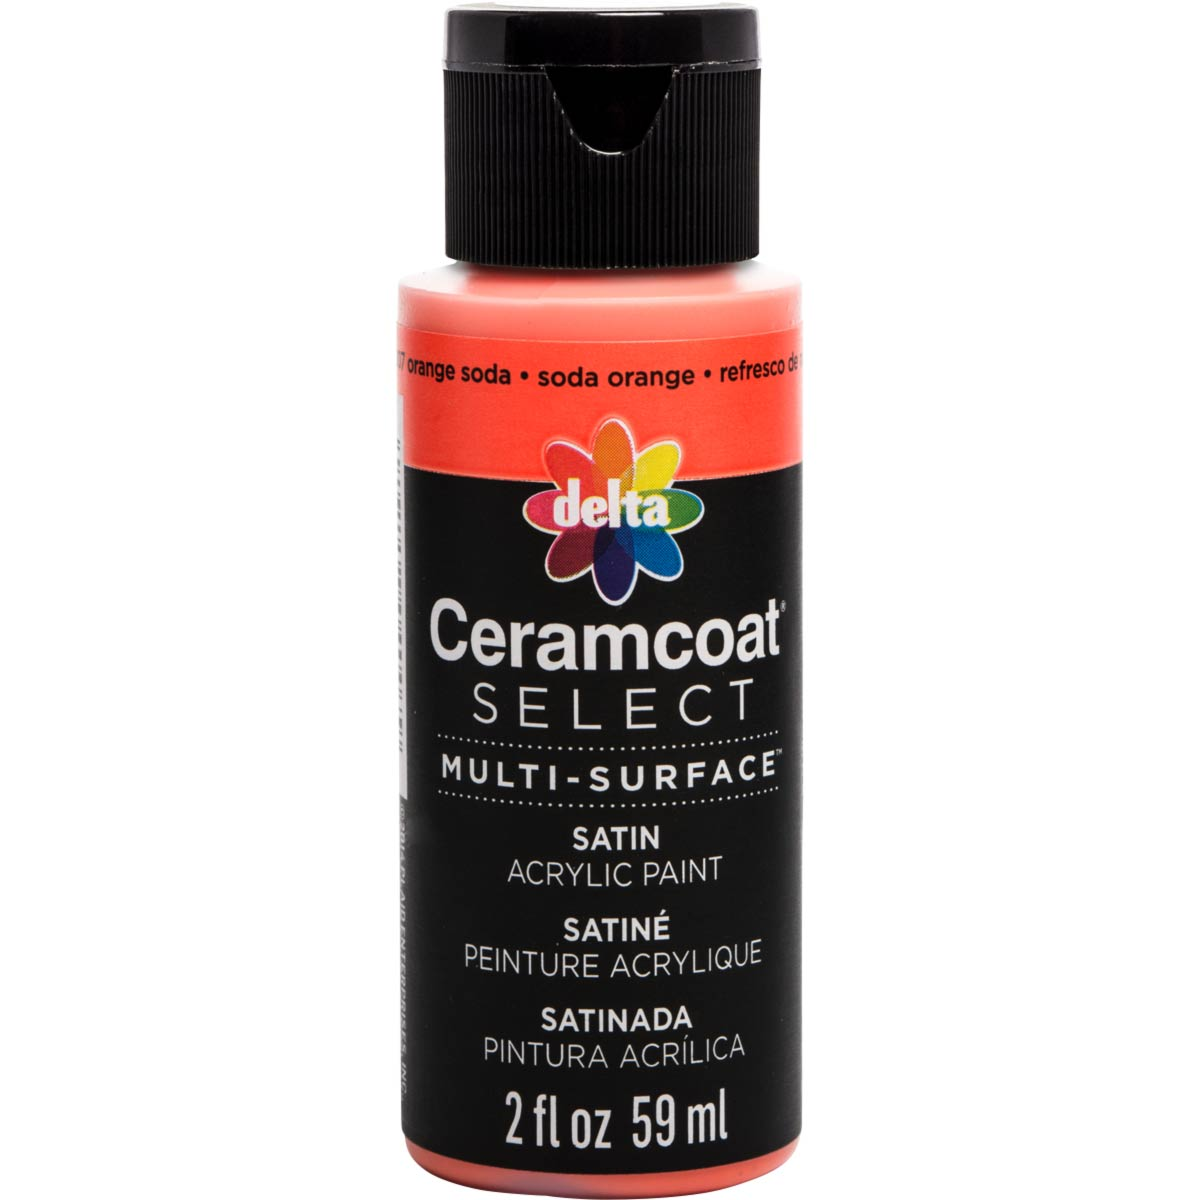 Delta Ceramcoat ® Select Multi-Surface Acrylic Paint - Satin - Orange Soda, 2 oz. - 04007